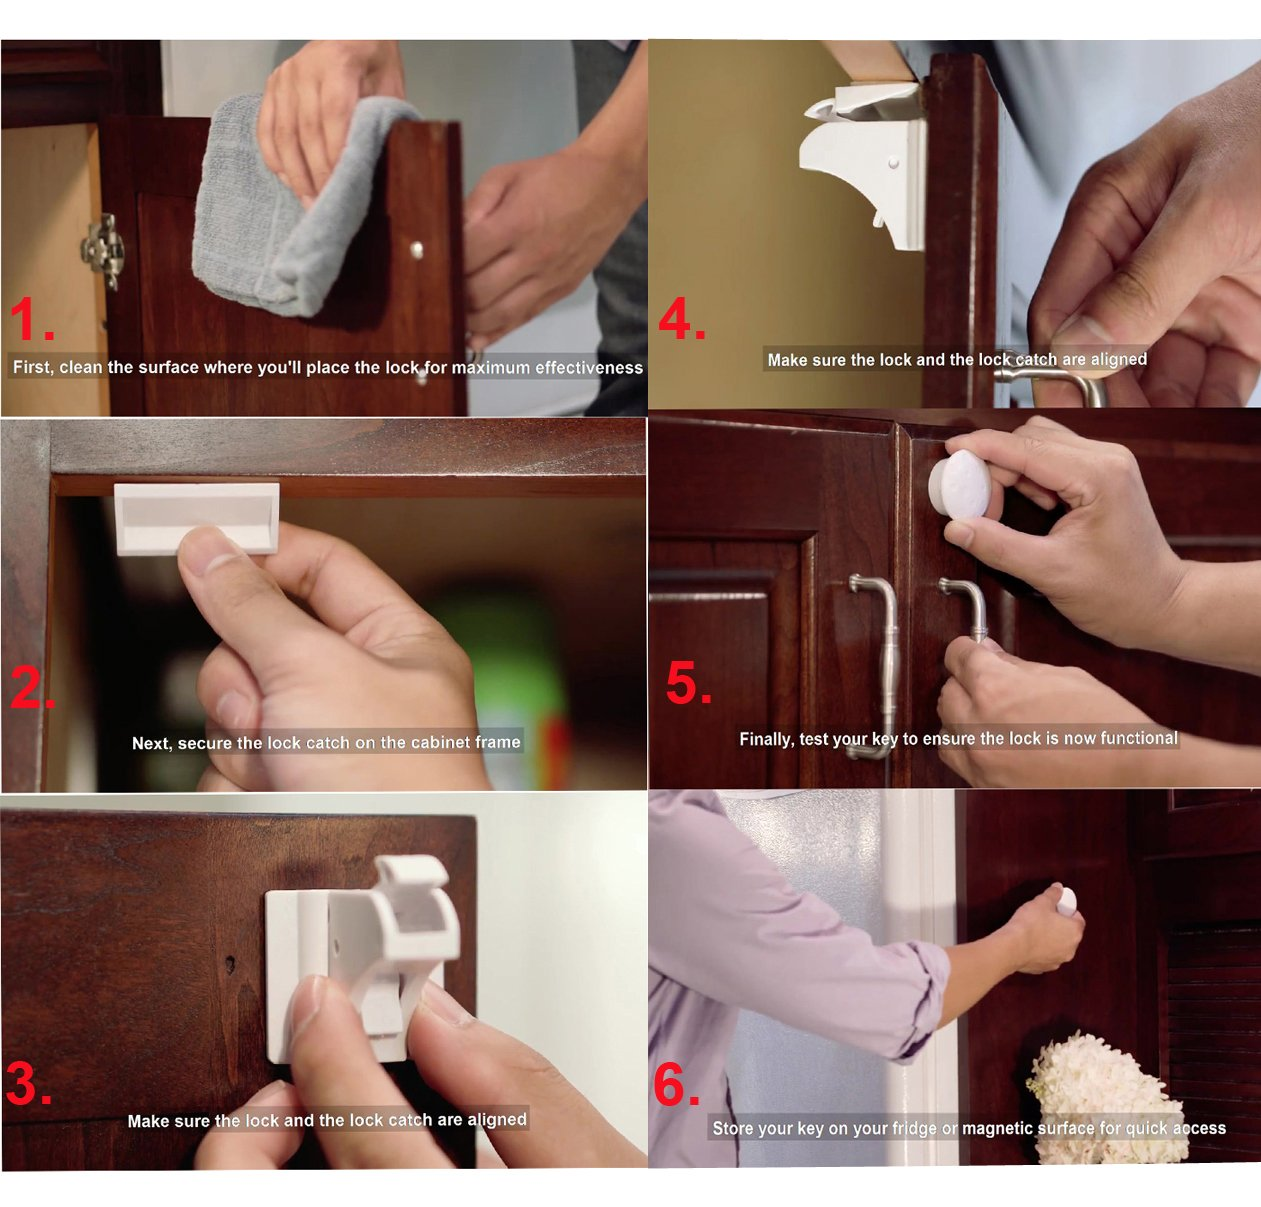 Magnetic Cabinet Locks-Child Safety Locks-Baby Proofing Cabinets System - (4 Locks + 1 Key)-Cabinet Locks-Child Locks-Safety Locks-Child Proof-Baby Proofing-Child Proofing-Magnetic Lock